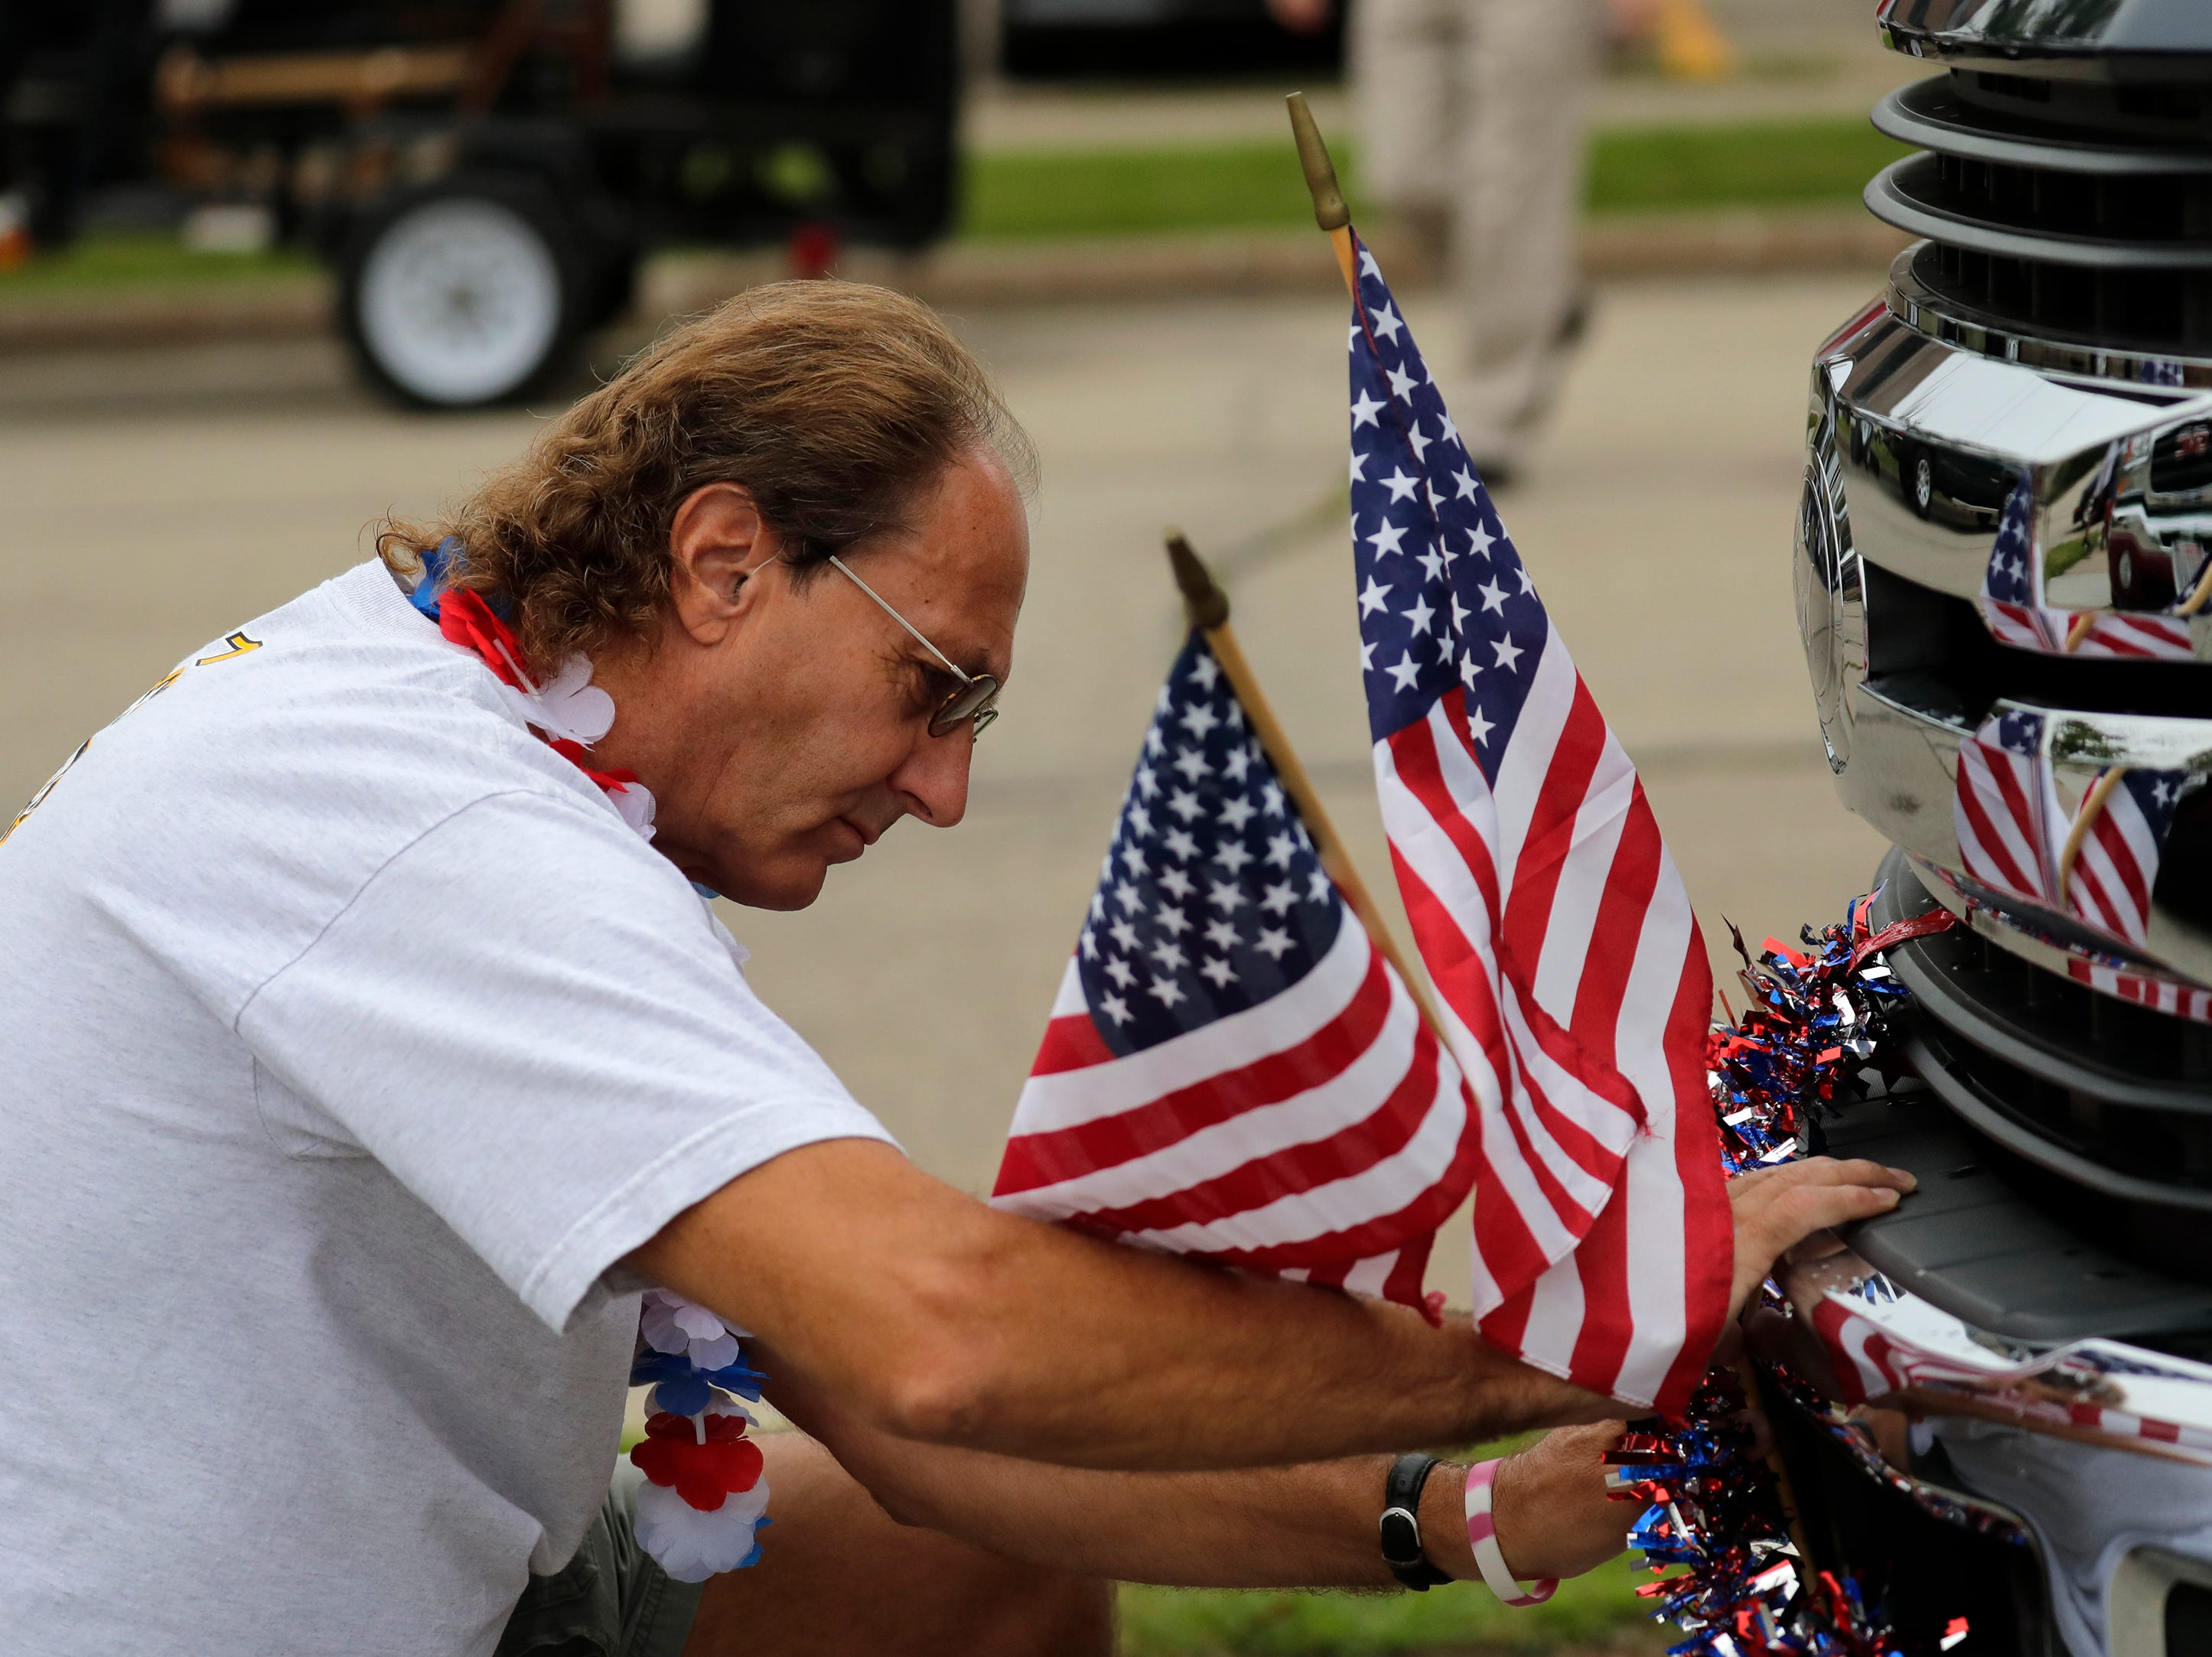 Rick Grissom of Neenah places flags on a parade vehickle prior to the start of the Neenah-Menasha Labor Day Parade Monday, Sept. 3, 2018, in downtown Menasha, Wis. 